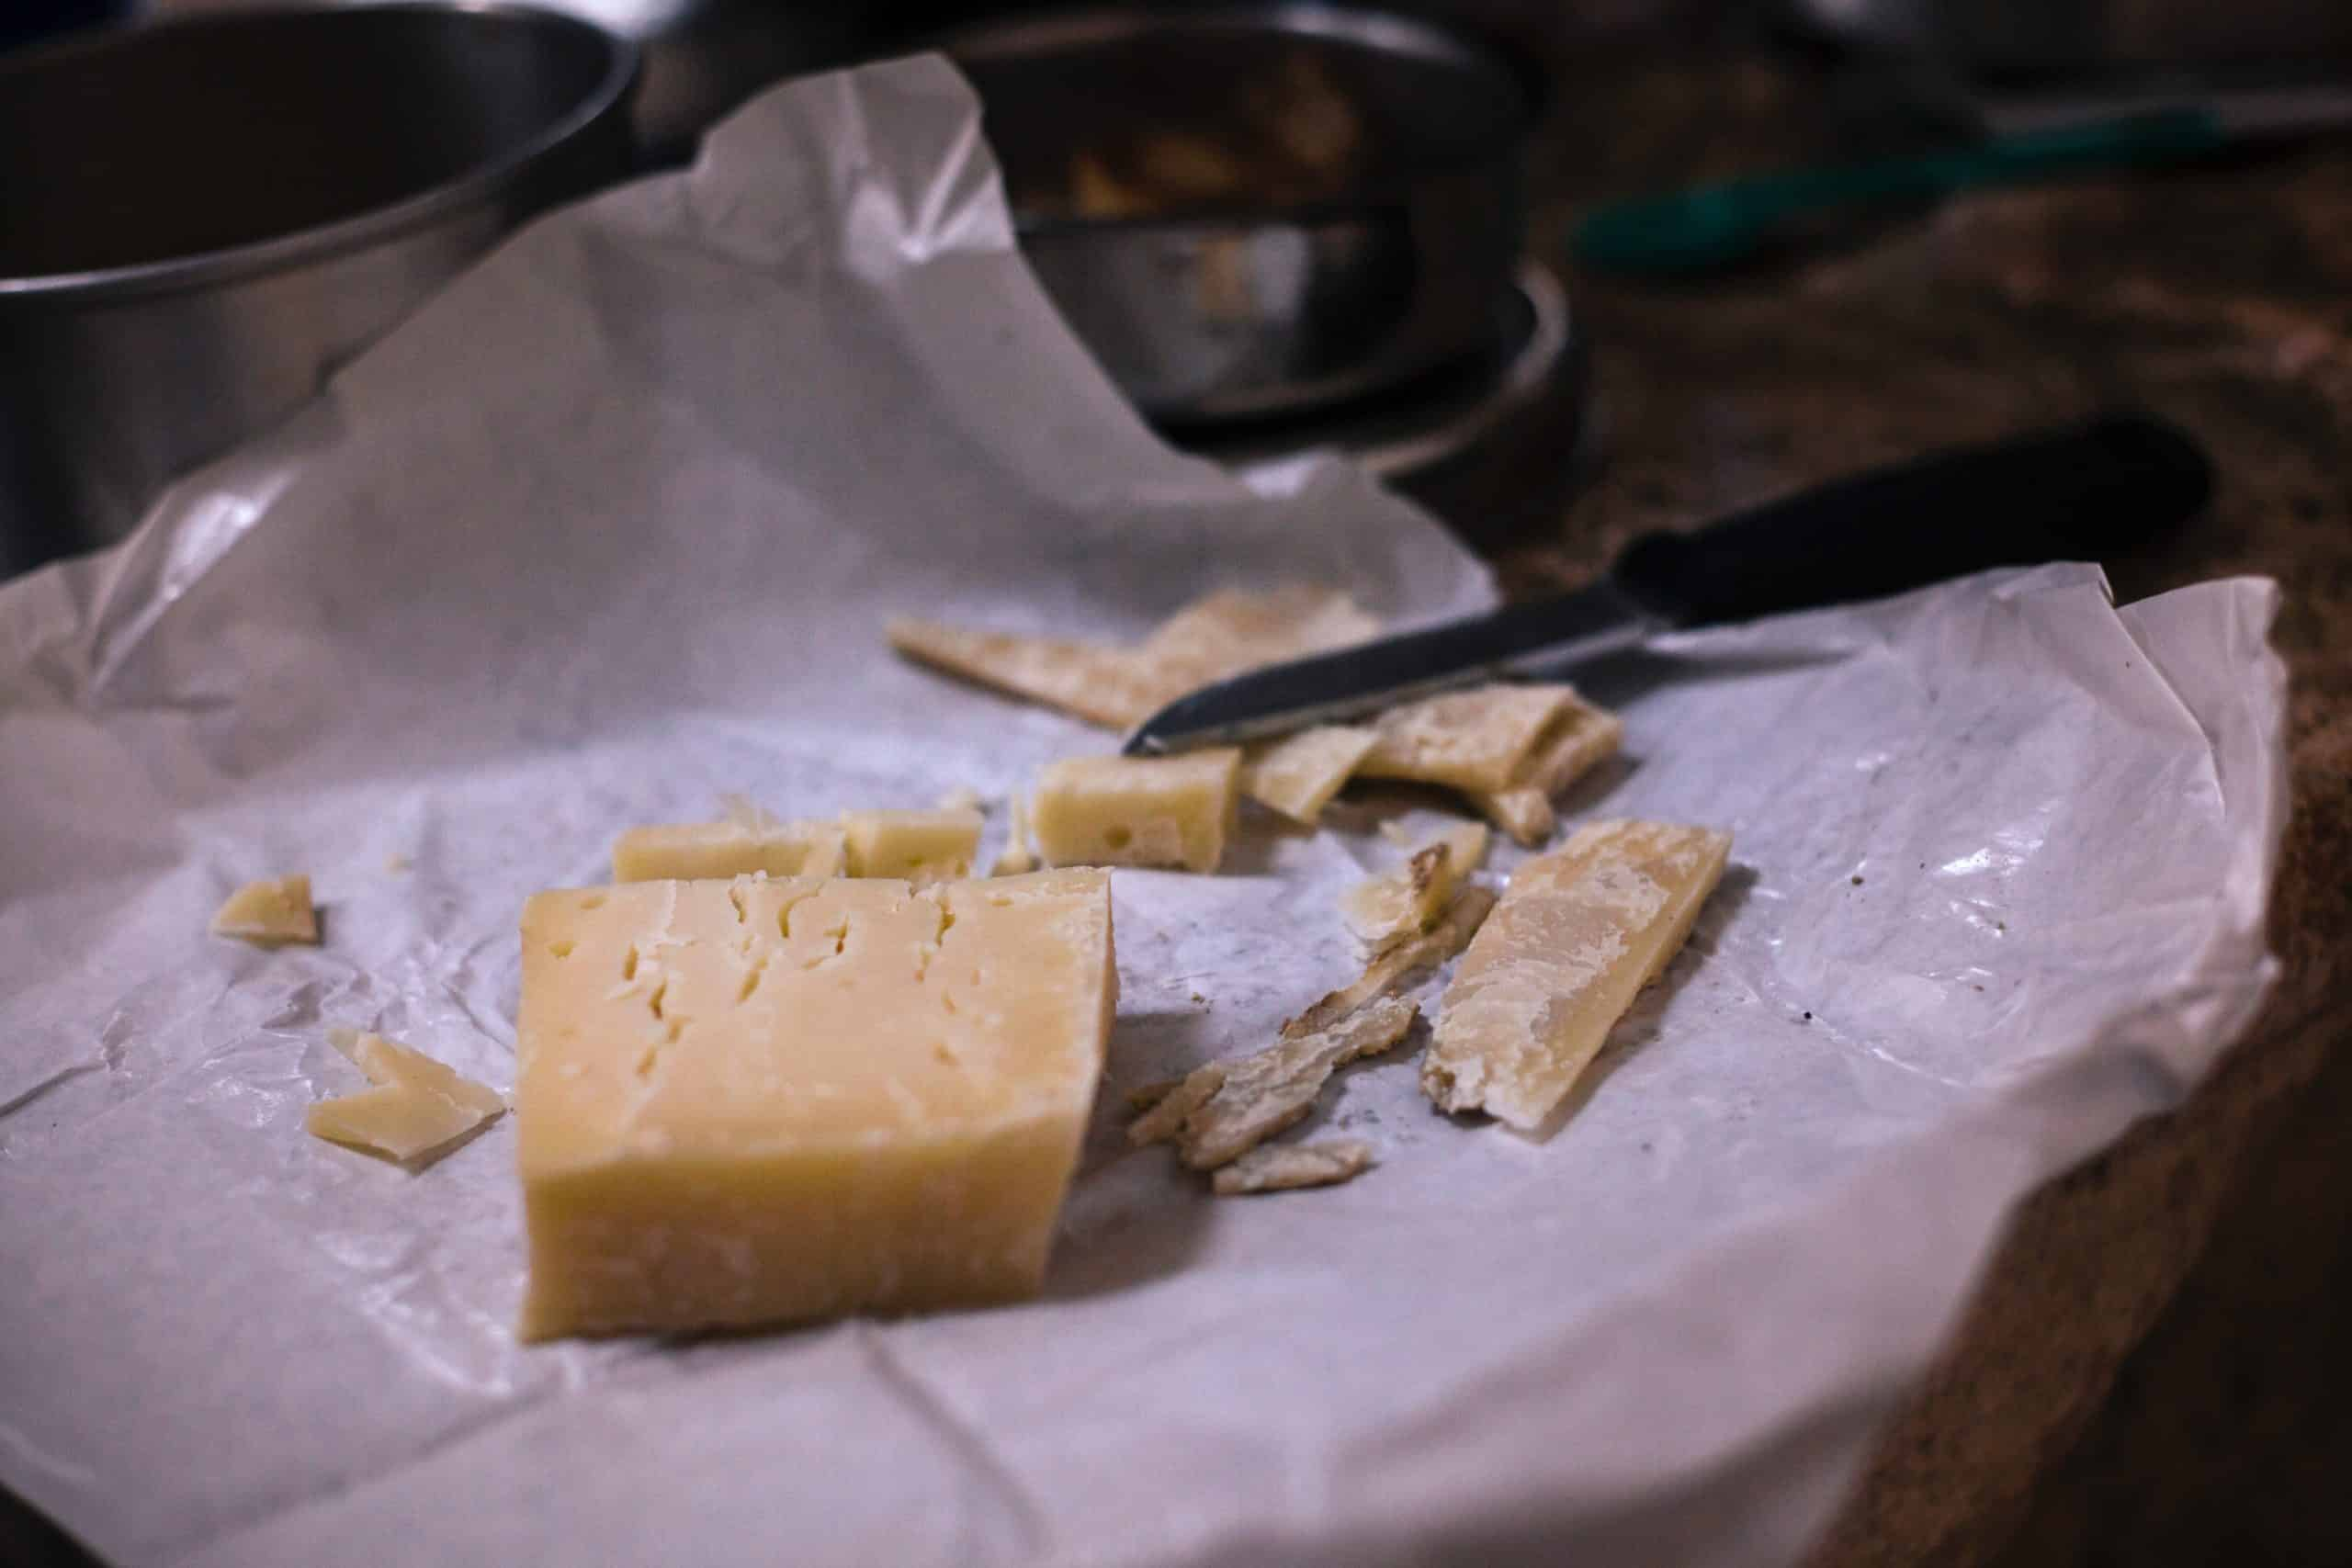 The Pros and Cons of Cheese